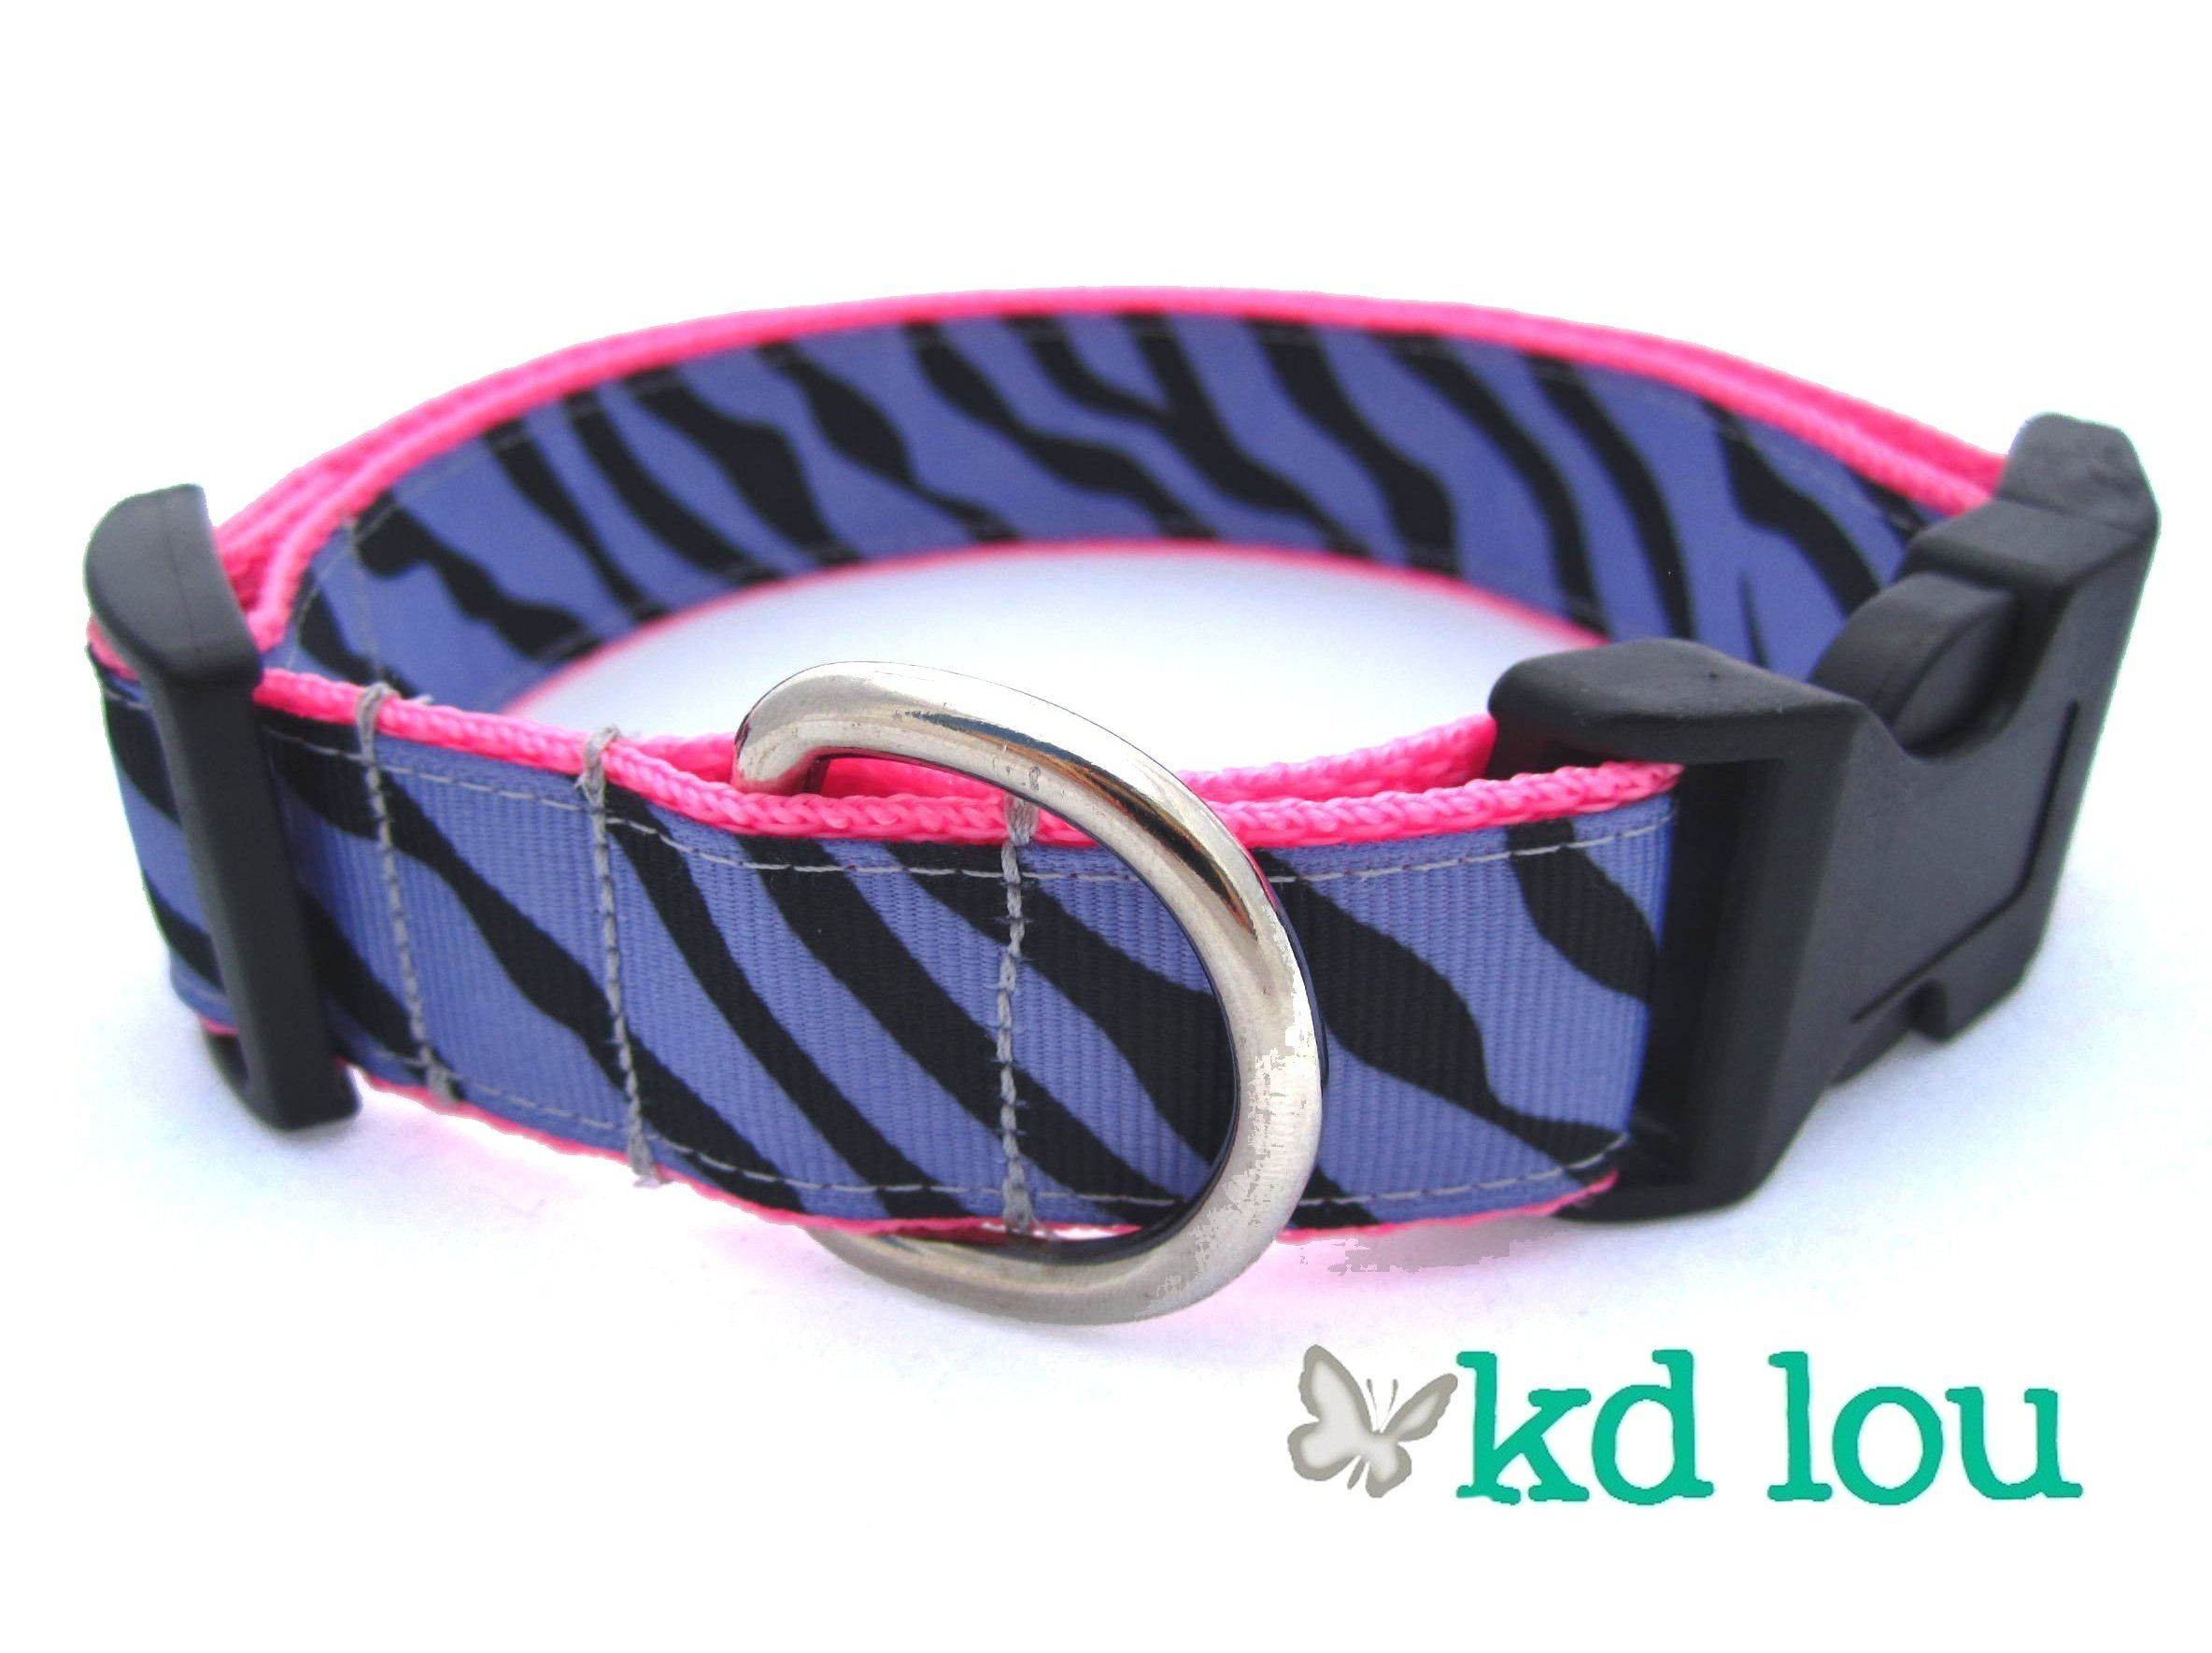 Purple Zebra Dog Collar  www.facebook.com/kdlou